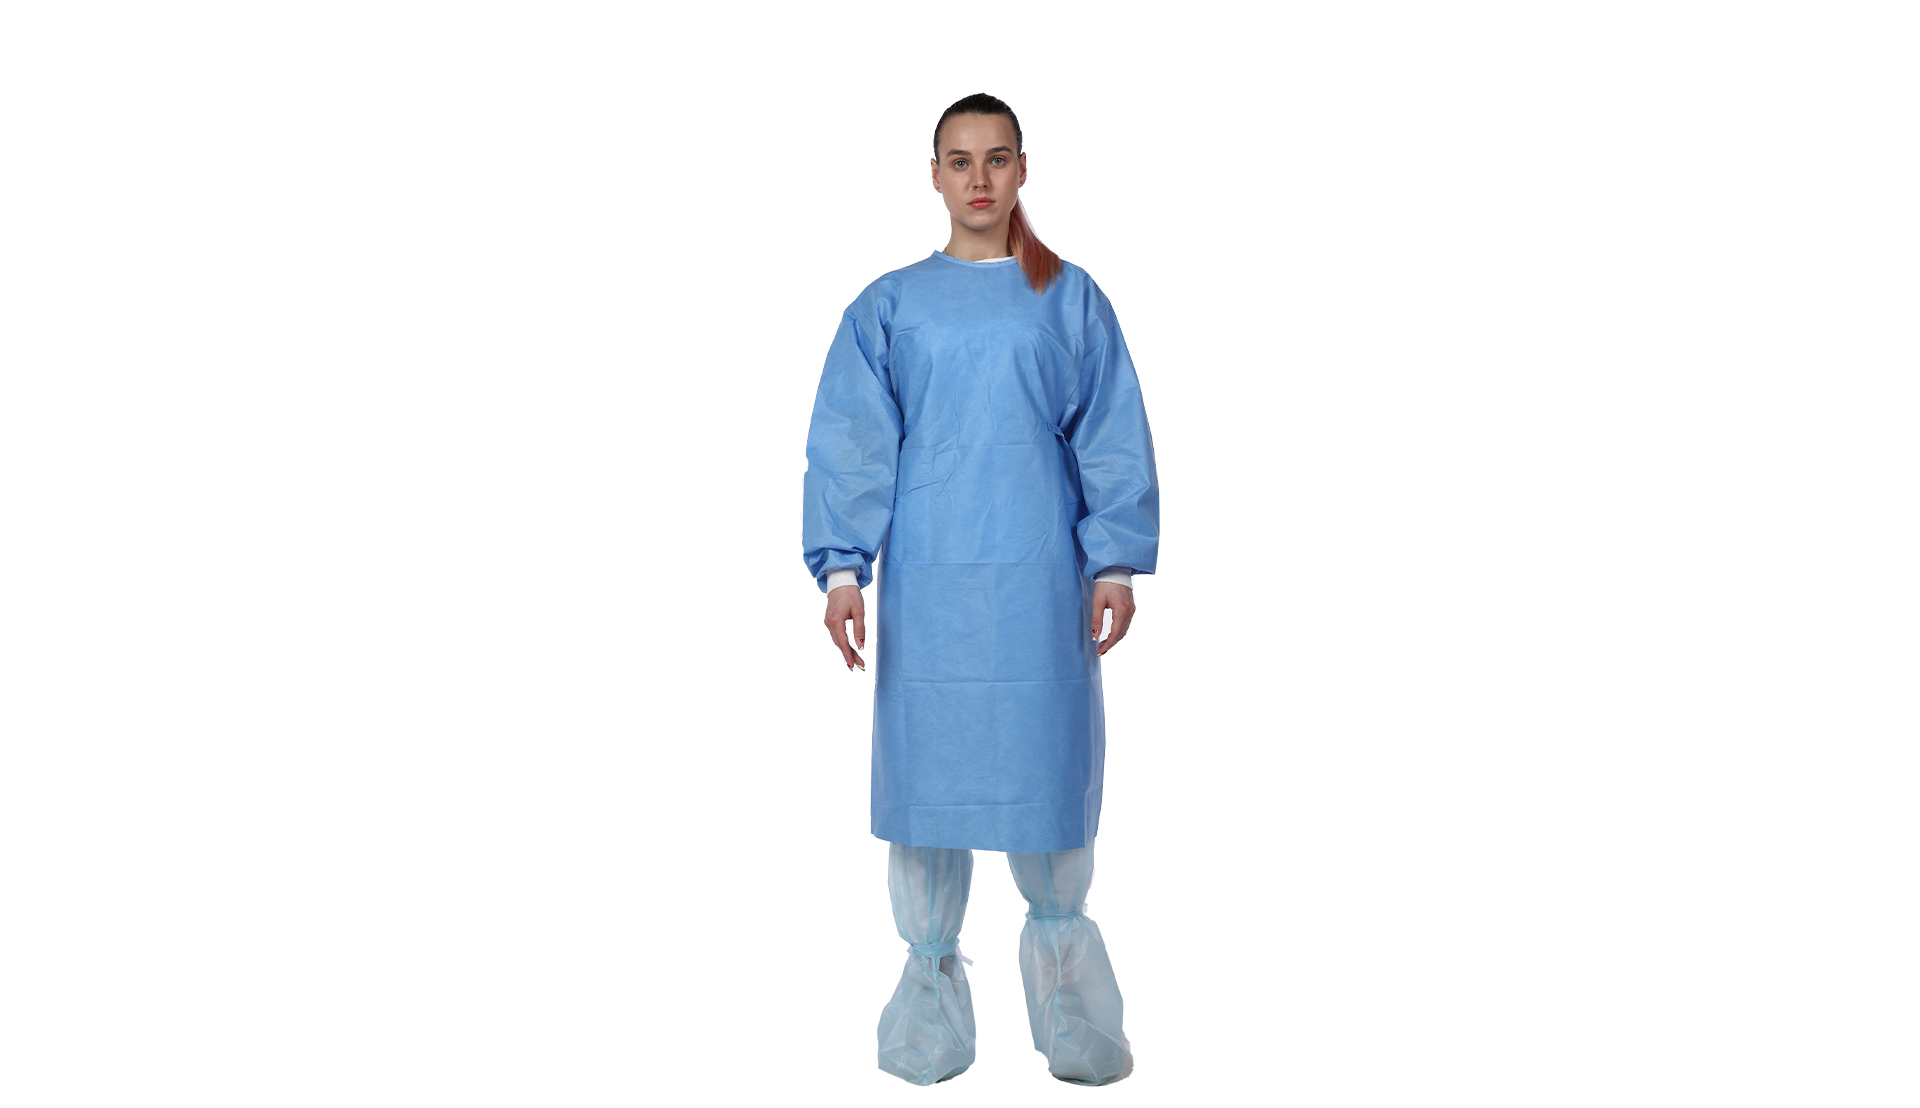 AAMI LEVE2 Surgical Gown